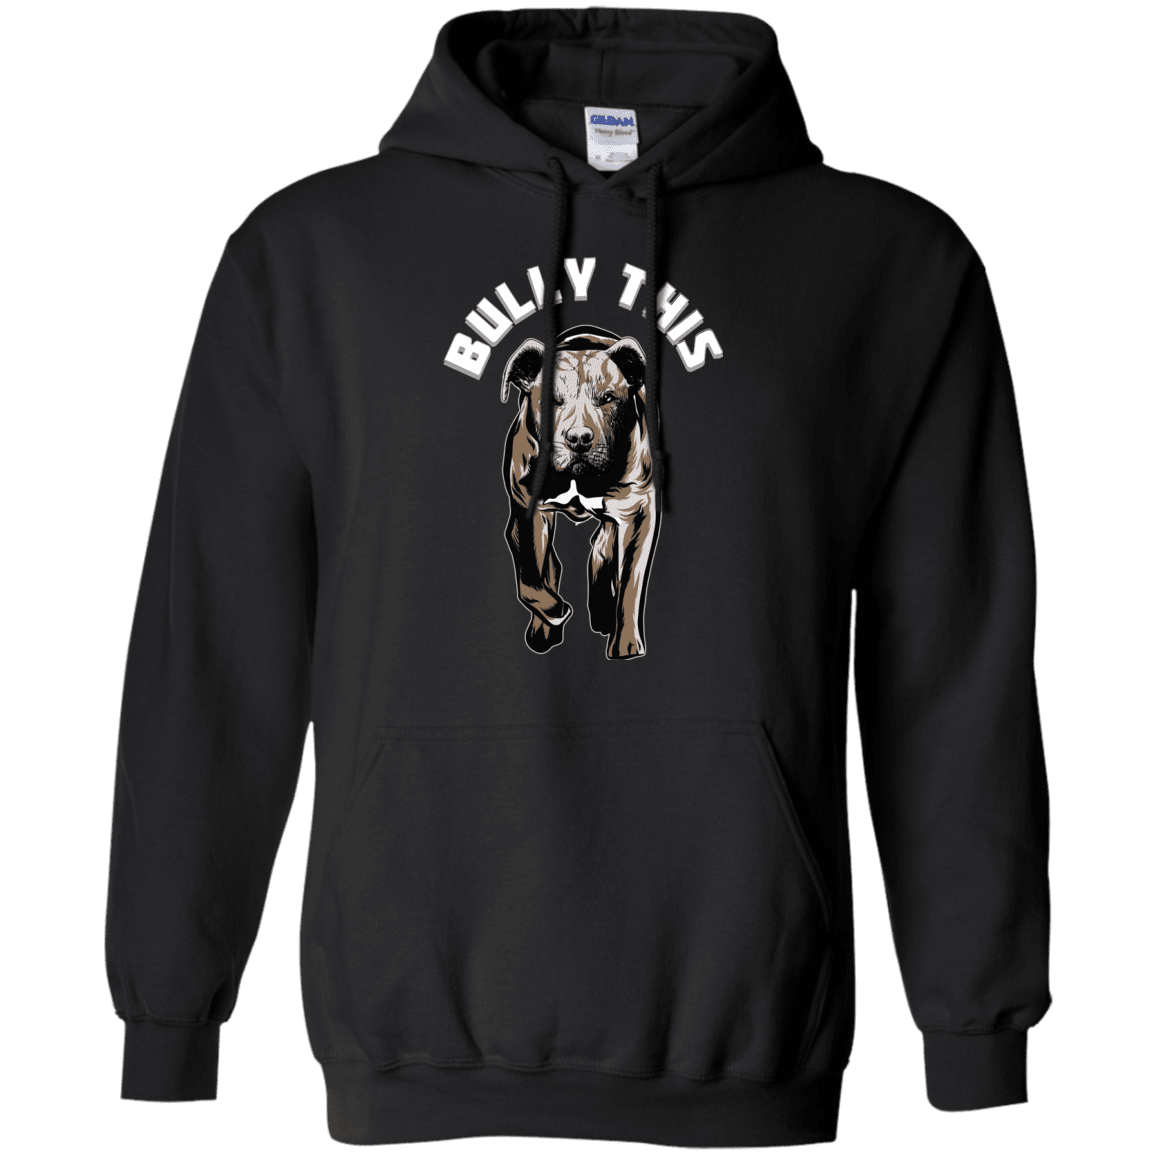 Bully This! - G185 Gildan Pullover Hoodie 8 oz., Sweatshirts | Pit Bull T Shirts, Hoodies and more | Little Pit Shop